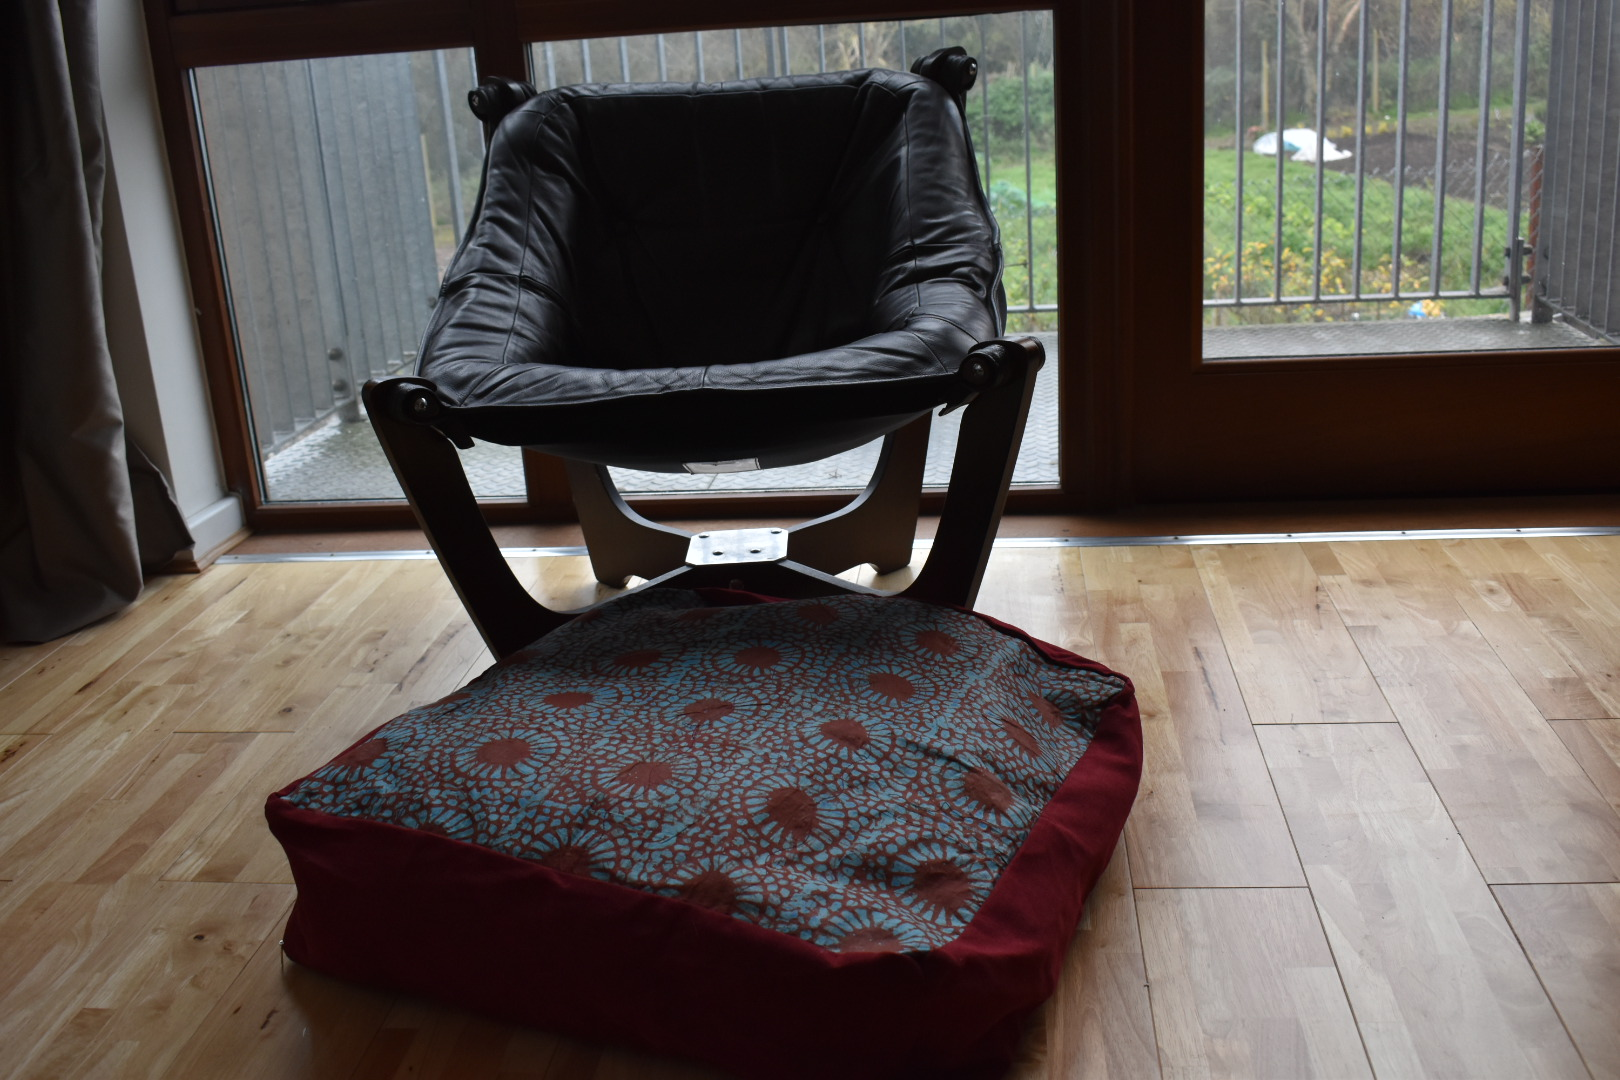 Large adire floor cushion - Ruby red mix